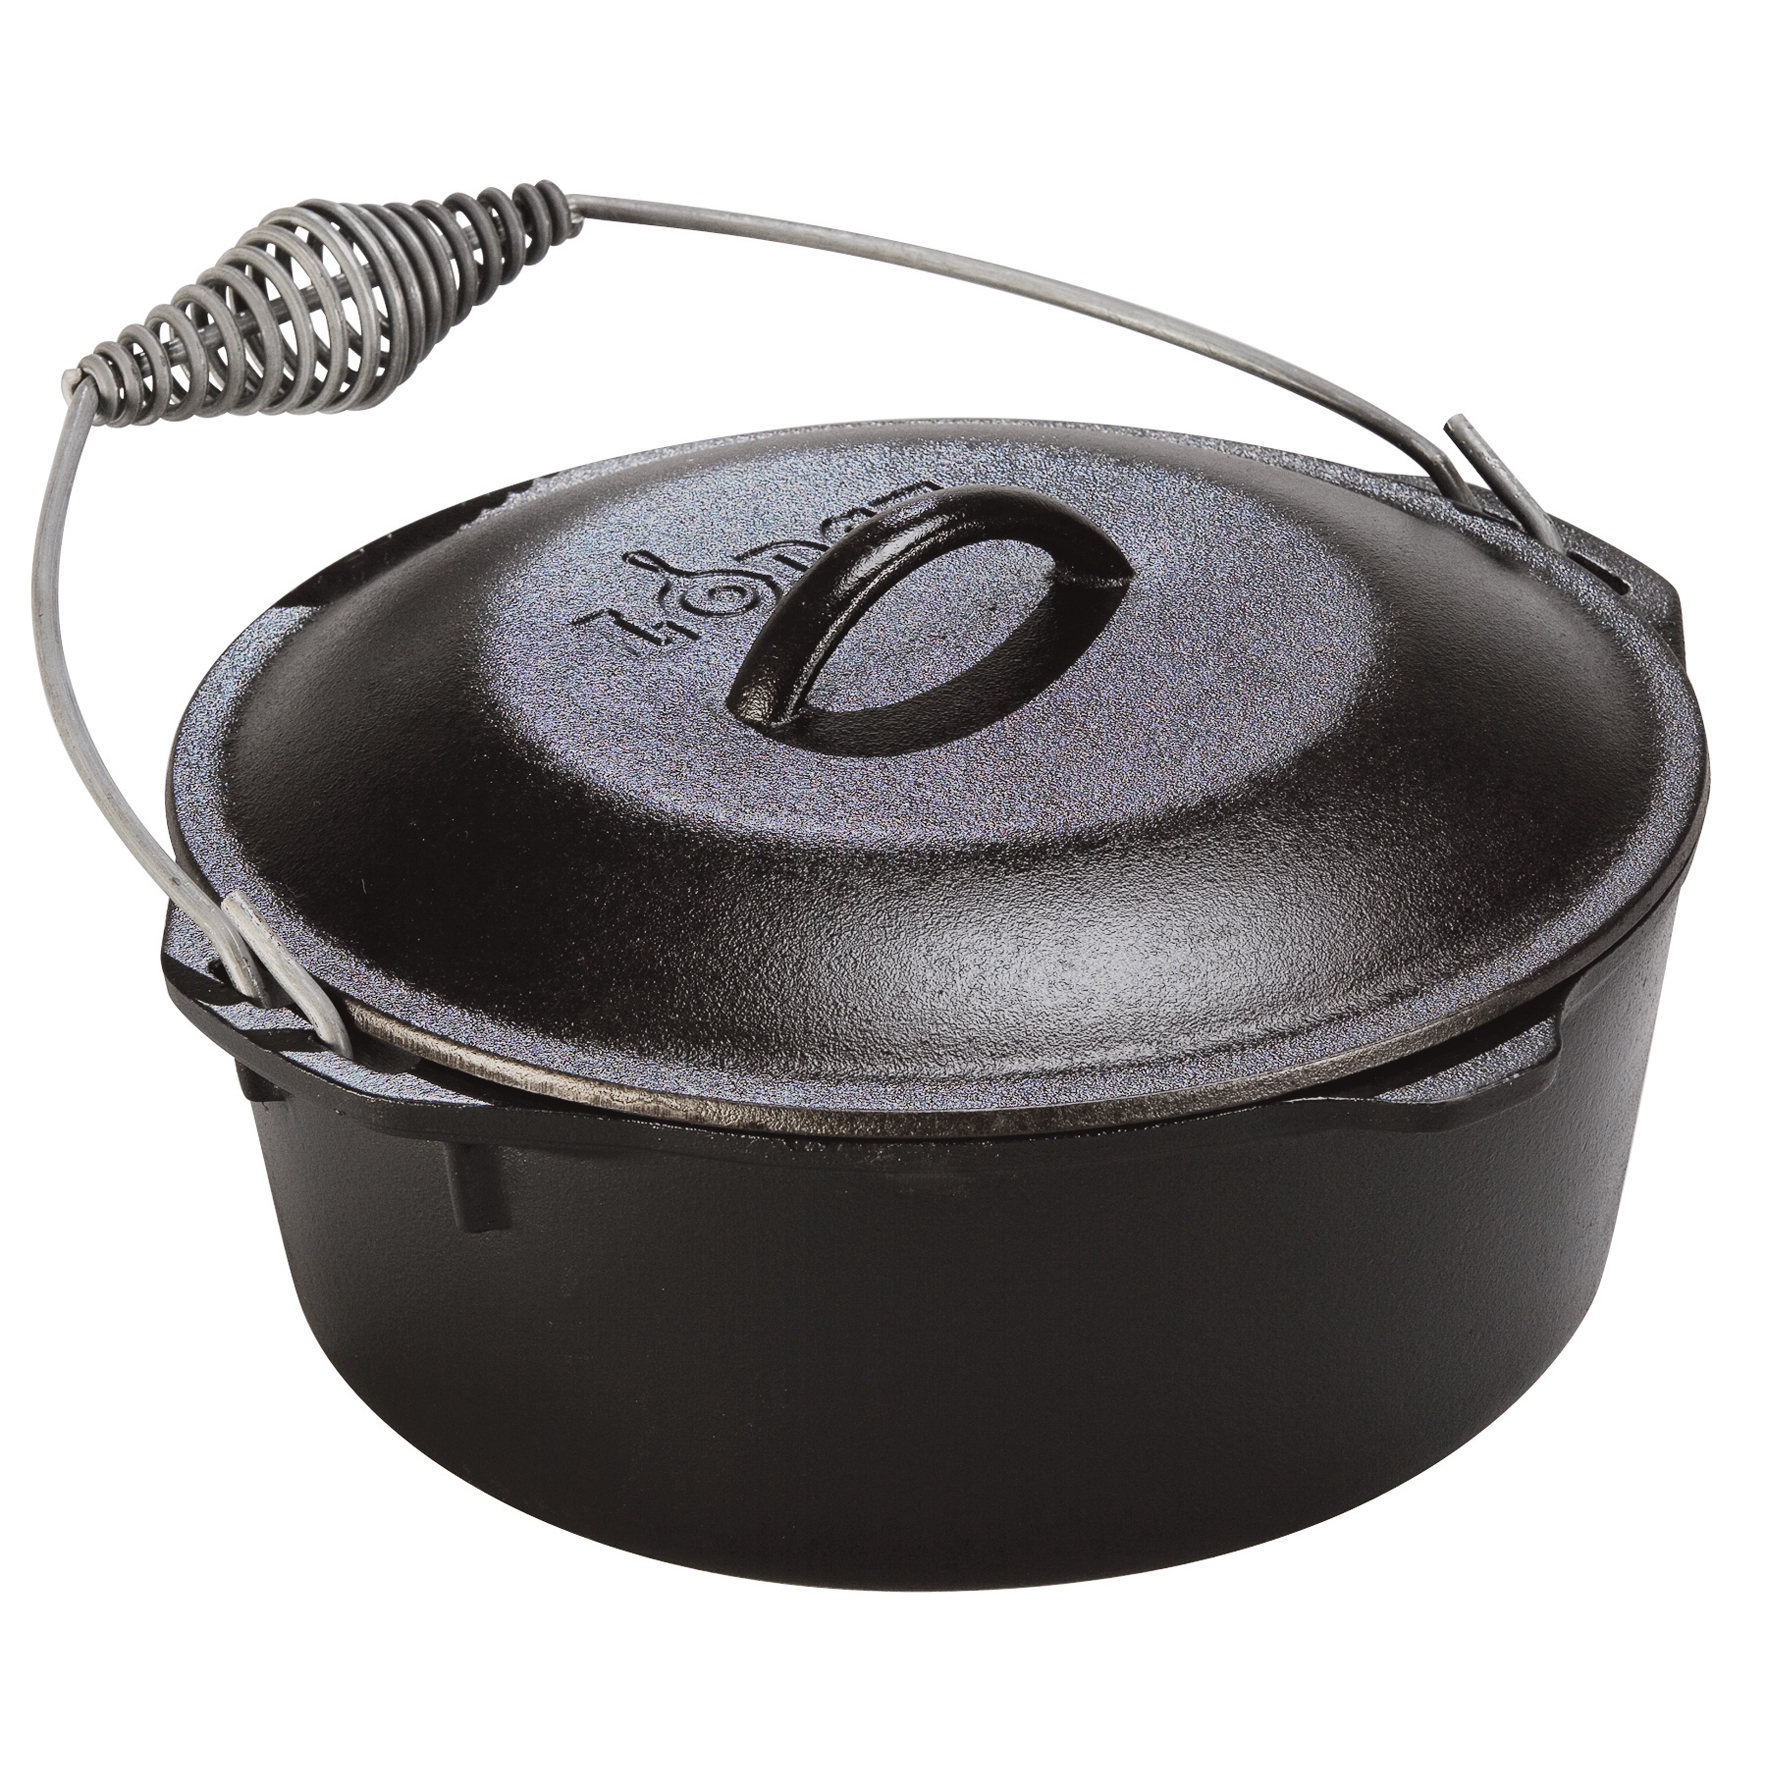 Lodge 5 Quart Spiral Bail Handle Cast Iron Dutch Oven, L8DO3